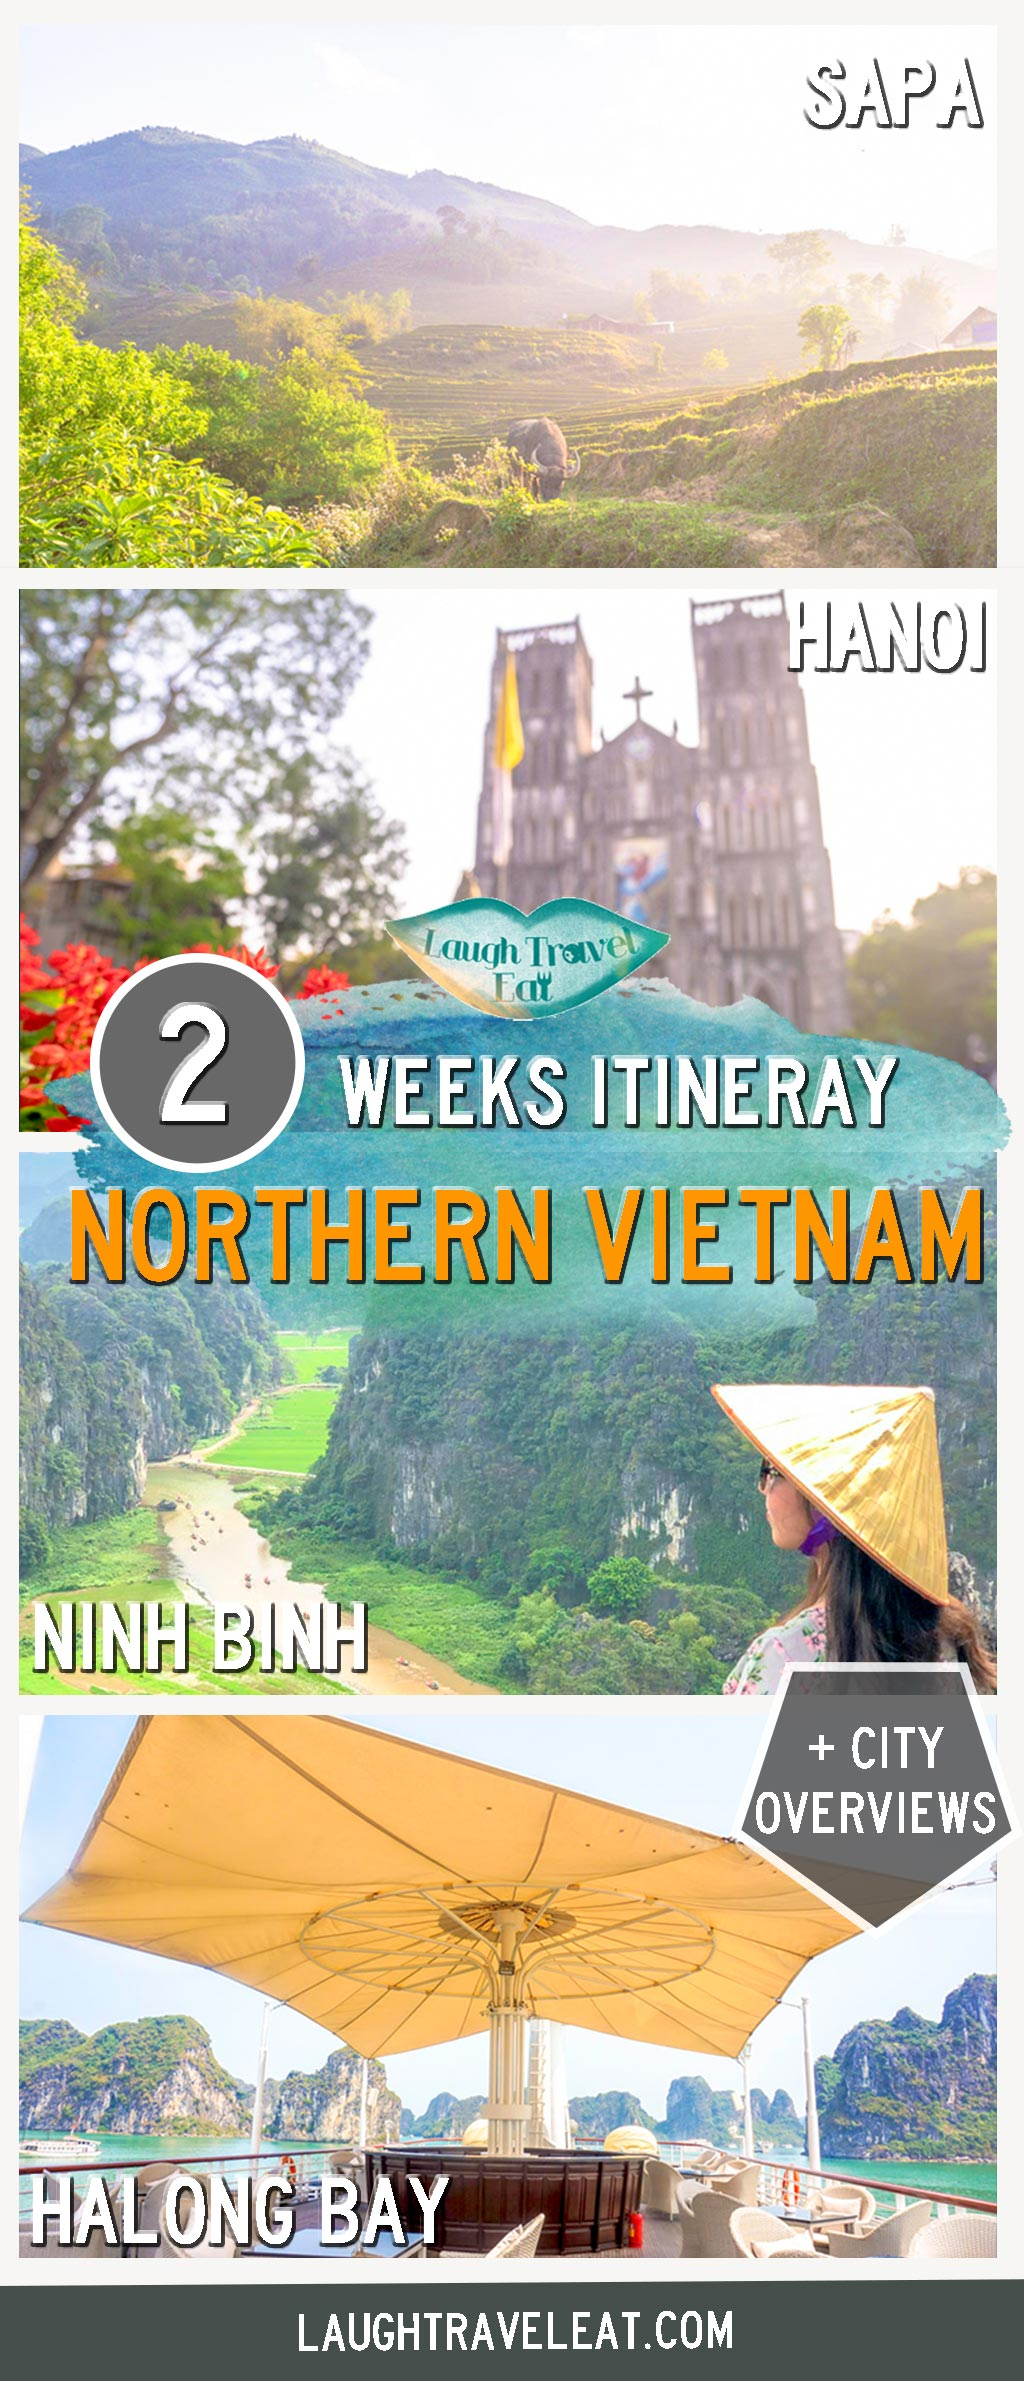 Vietnam has become a popular country to visit, whether you are on a backpacker budget or for luxury travels. When it comes to an itinerary, it can be difficult to choose between all that the country has to offer. I have travelled to Vietnam three times already for over six weeks in total, here is my 2 weeks in Vietnam suggestions: #vietnam #itinerary #2weeks